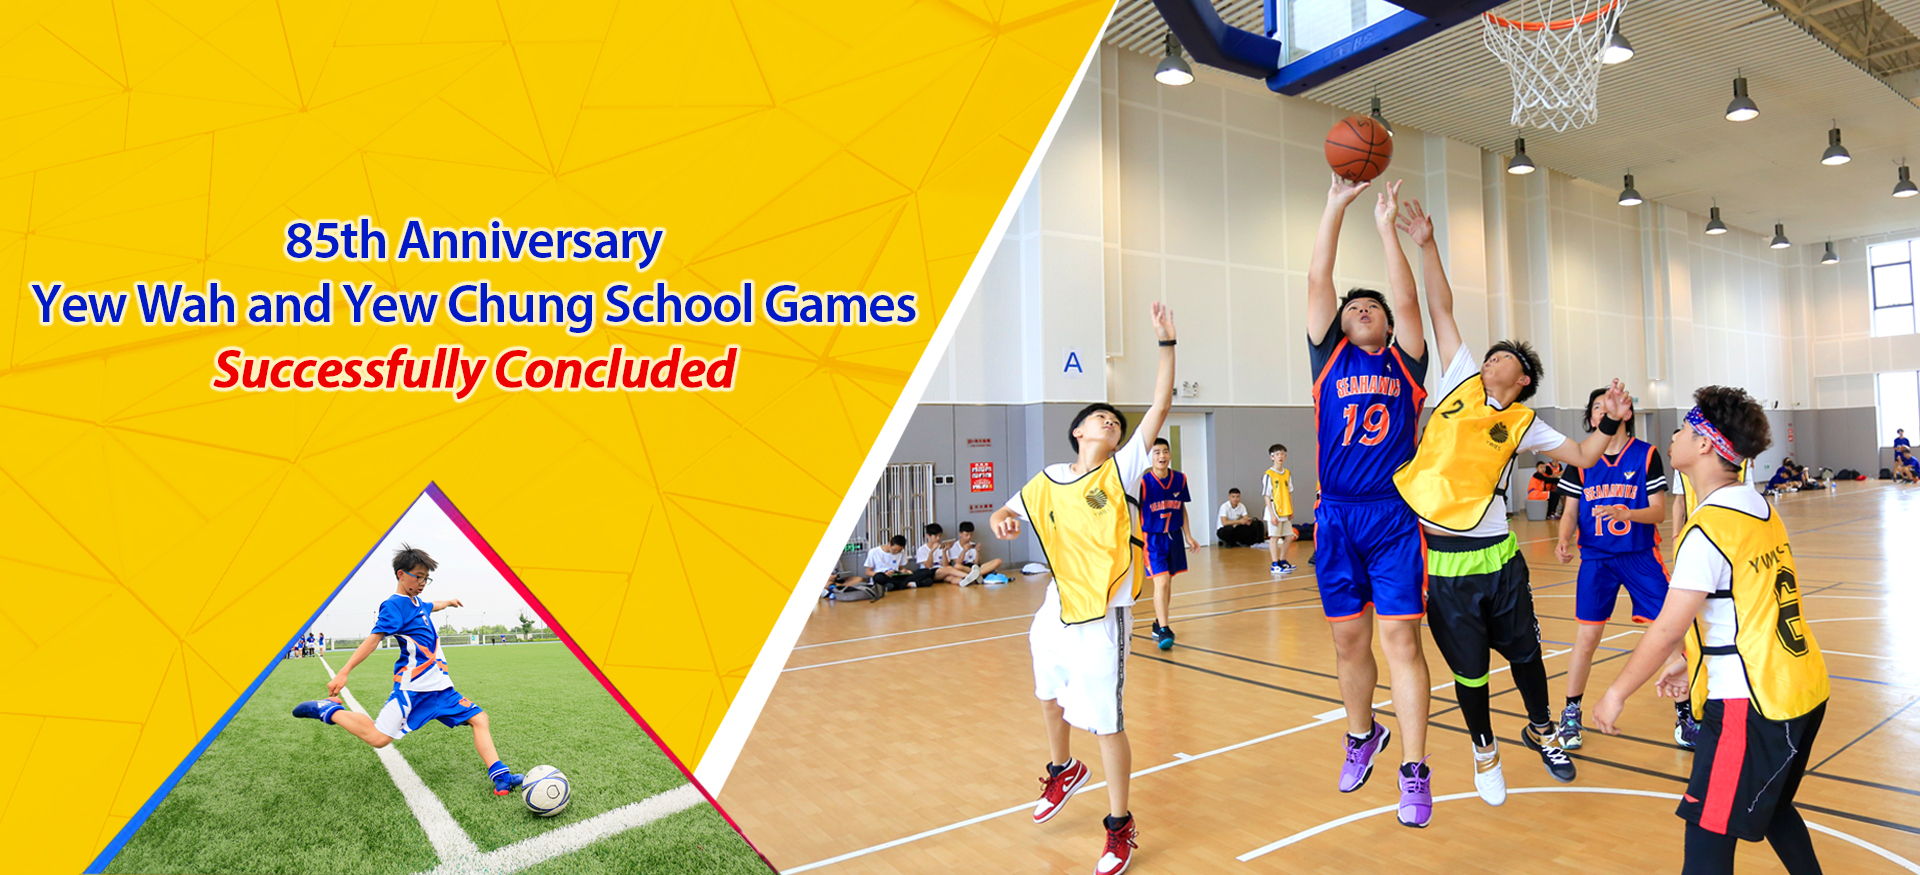 Striving For Excellence, Developing The Whole Person – The 85th Anniversary Yew Wah And Yew Chung School Games